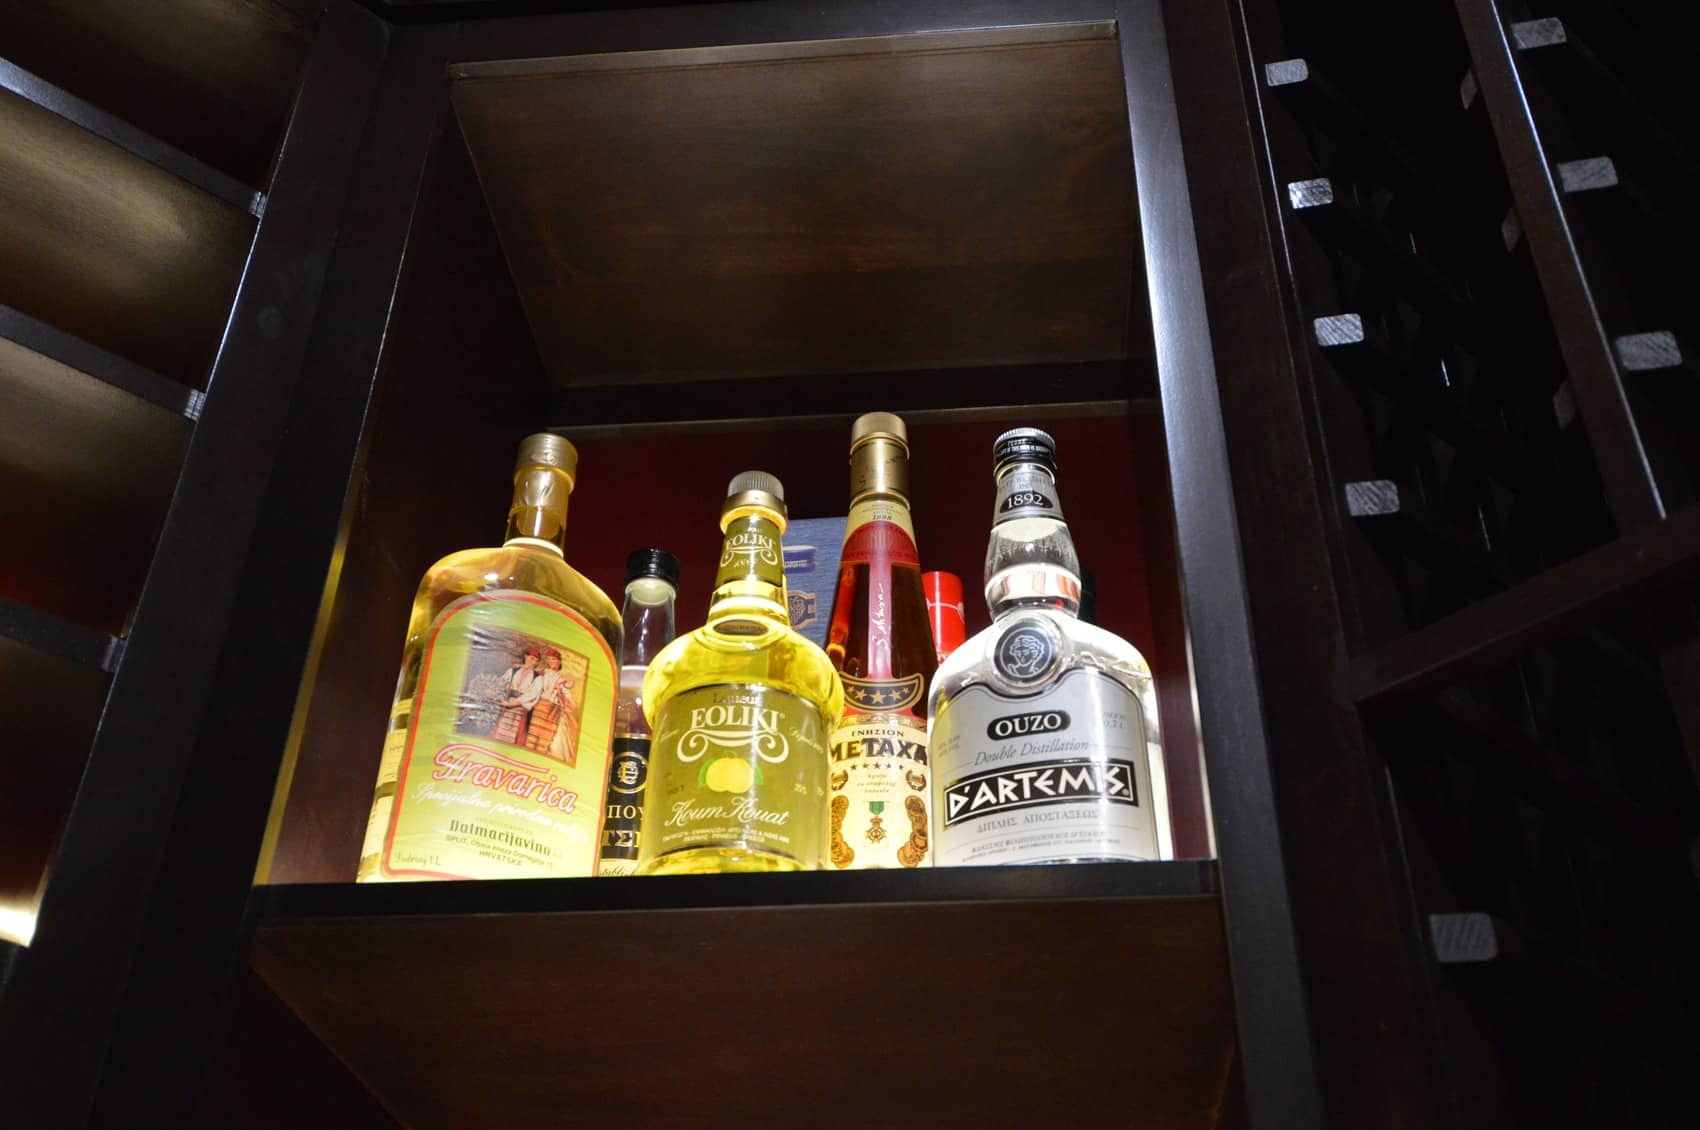 Spirits in the lighted cubicle appears glowing when viewed underneath the shelf.